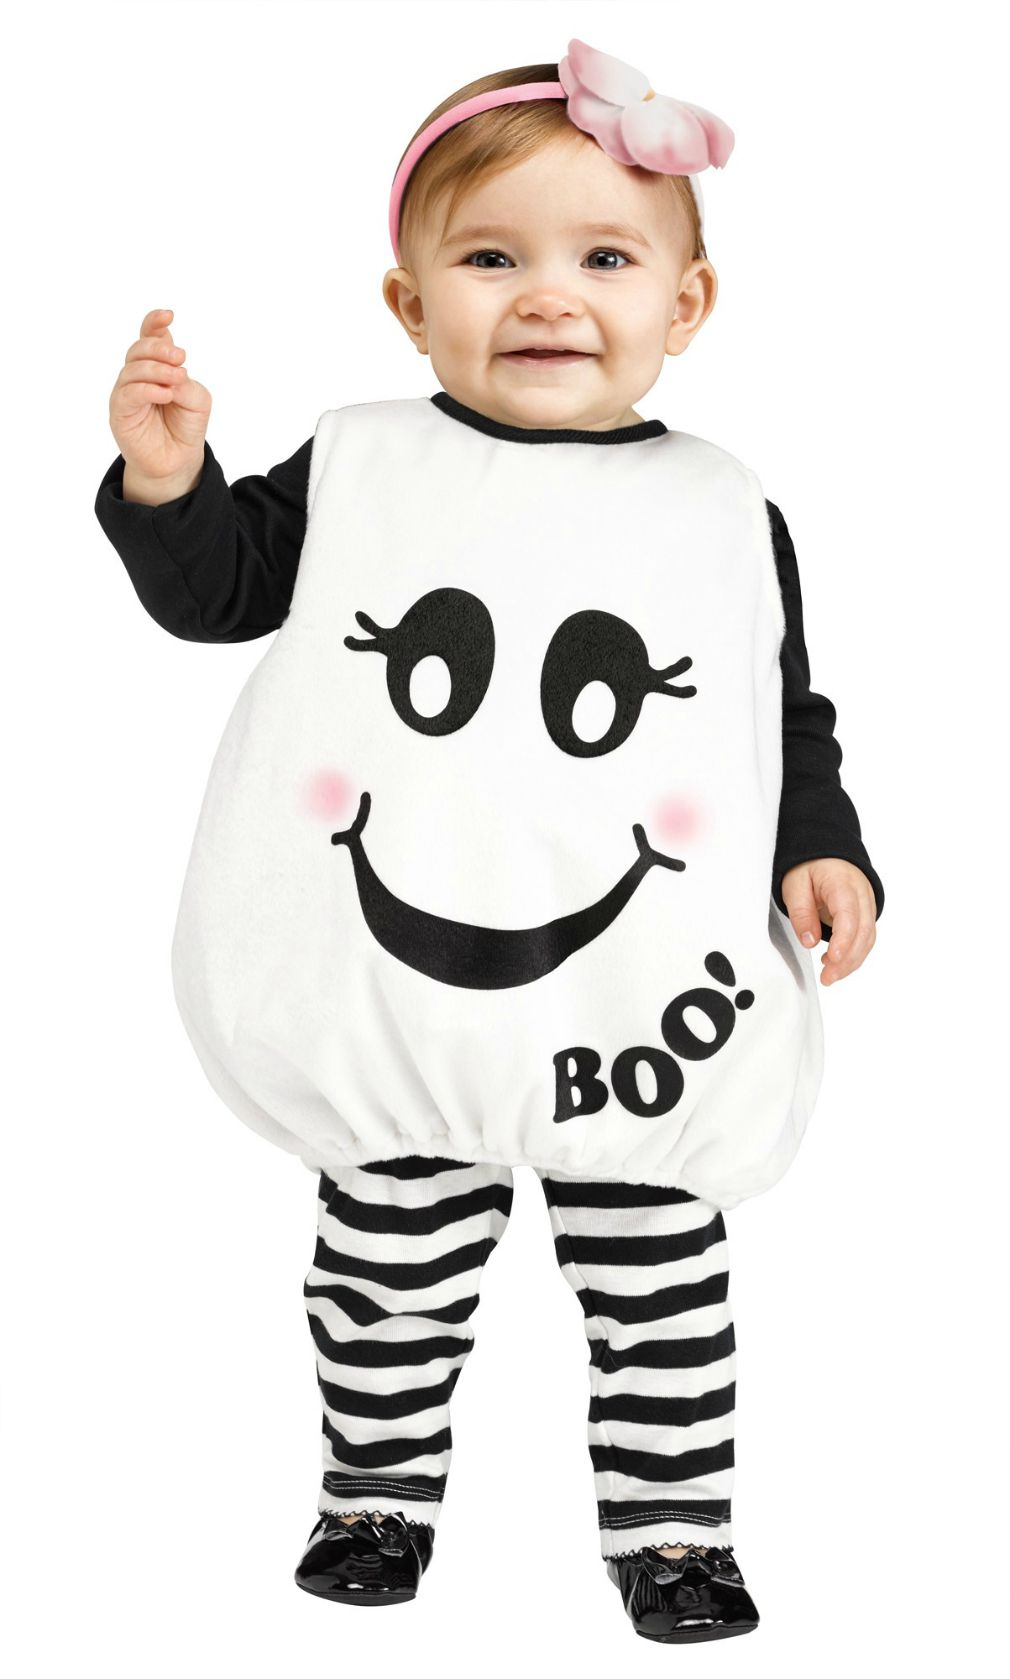 Your toddler will look adorable in this Toddler Baby Boo! smiling ghost costume.